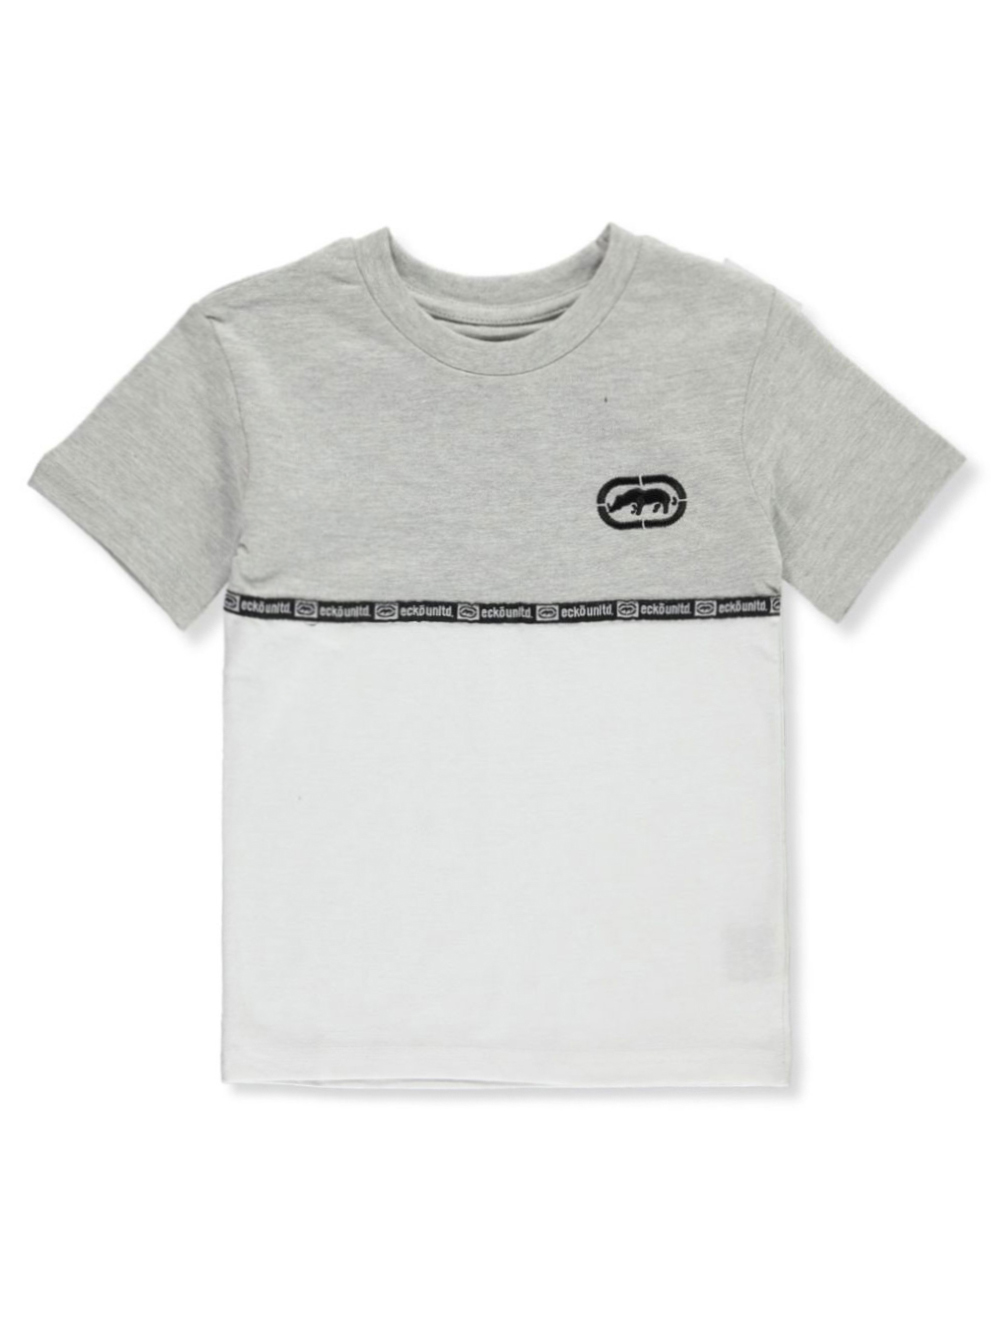 Size 7 T-Shirts for Boys